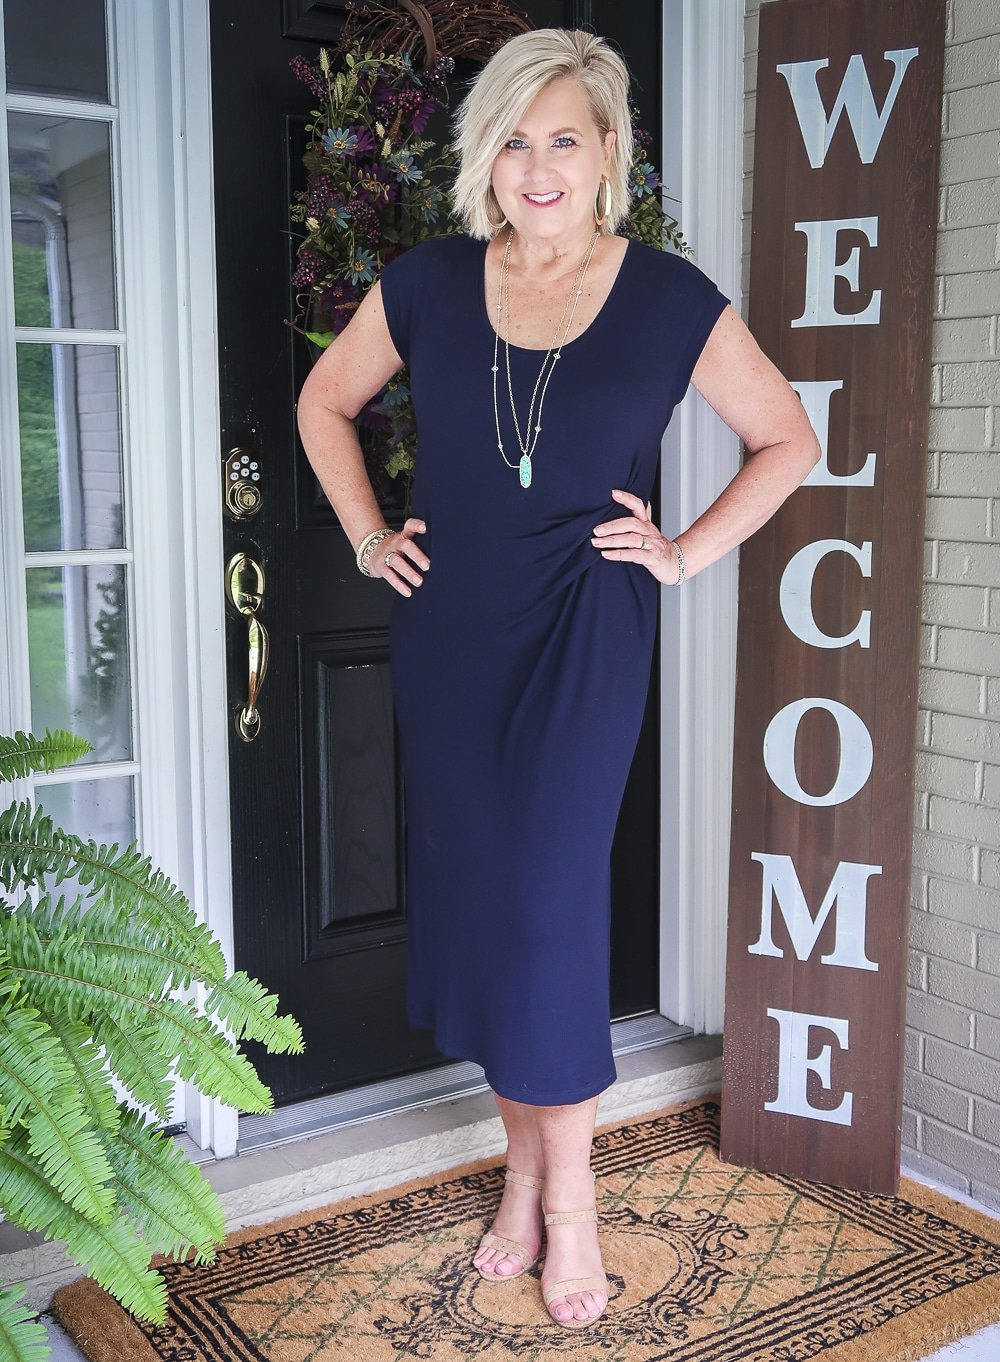 Fashion Blogger 50 Is Not Old is wearing a navy scoop neck midi dress with cork heels